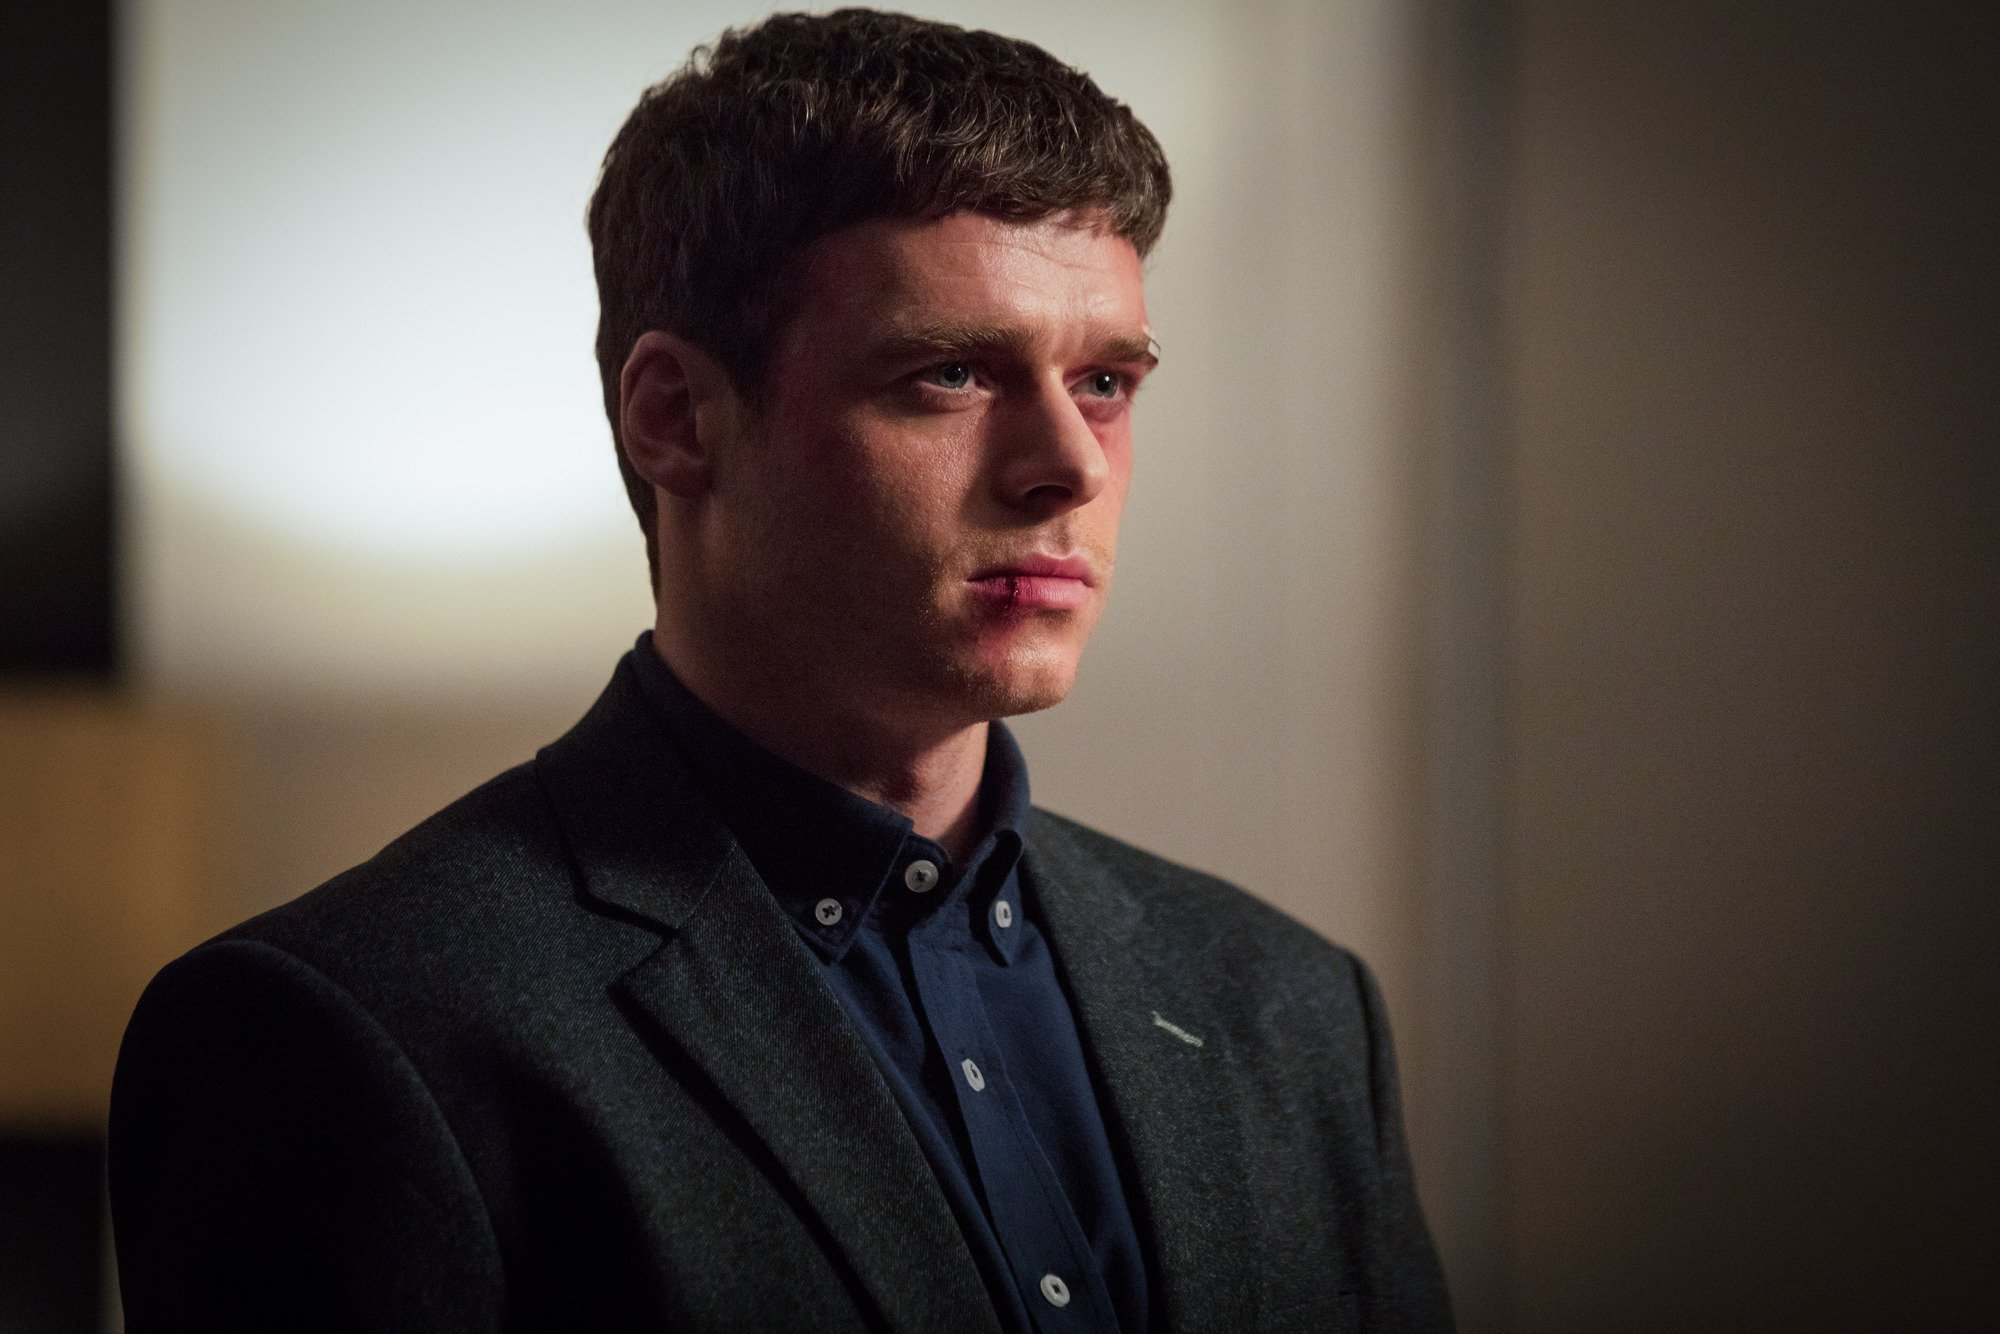 WARNING: Embargoed for publication until 00:00:01 on 18/09/2018 - Programme Name: Bodyguard - TX: n/a - Episode: n/a (No. Ep 6) - Picture Shows: *STRICTLY NOT FOR PUBLICATION UNTIL 00:01HRS, TUESDAY 18TH SEPTEMBER, 2018* David Budd (RICHARD MADDEN) - (C) World Productions - Photographer: Sophie Mutevelian